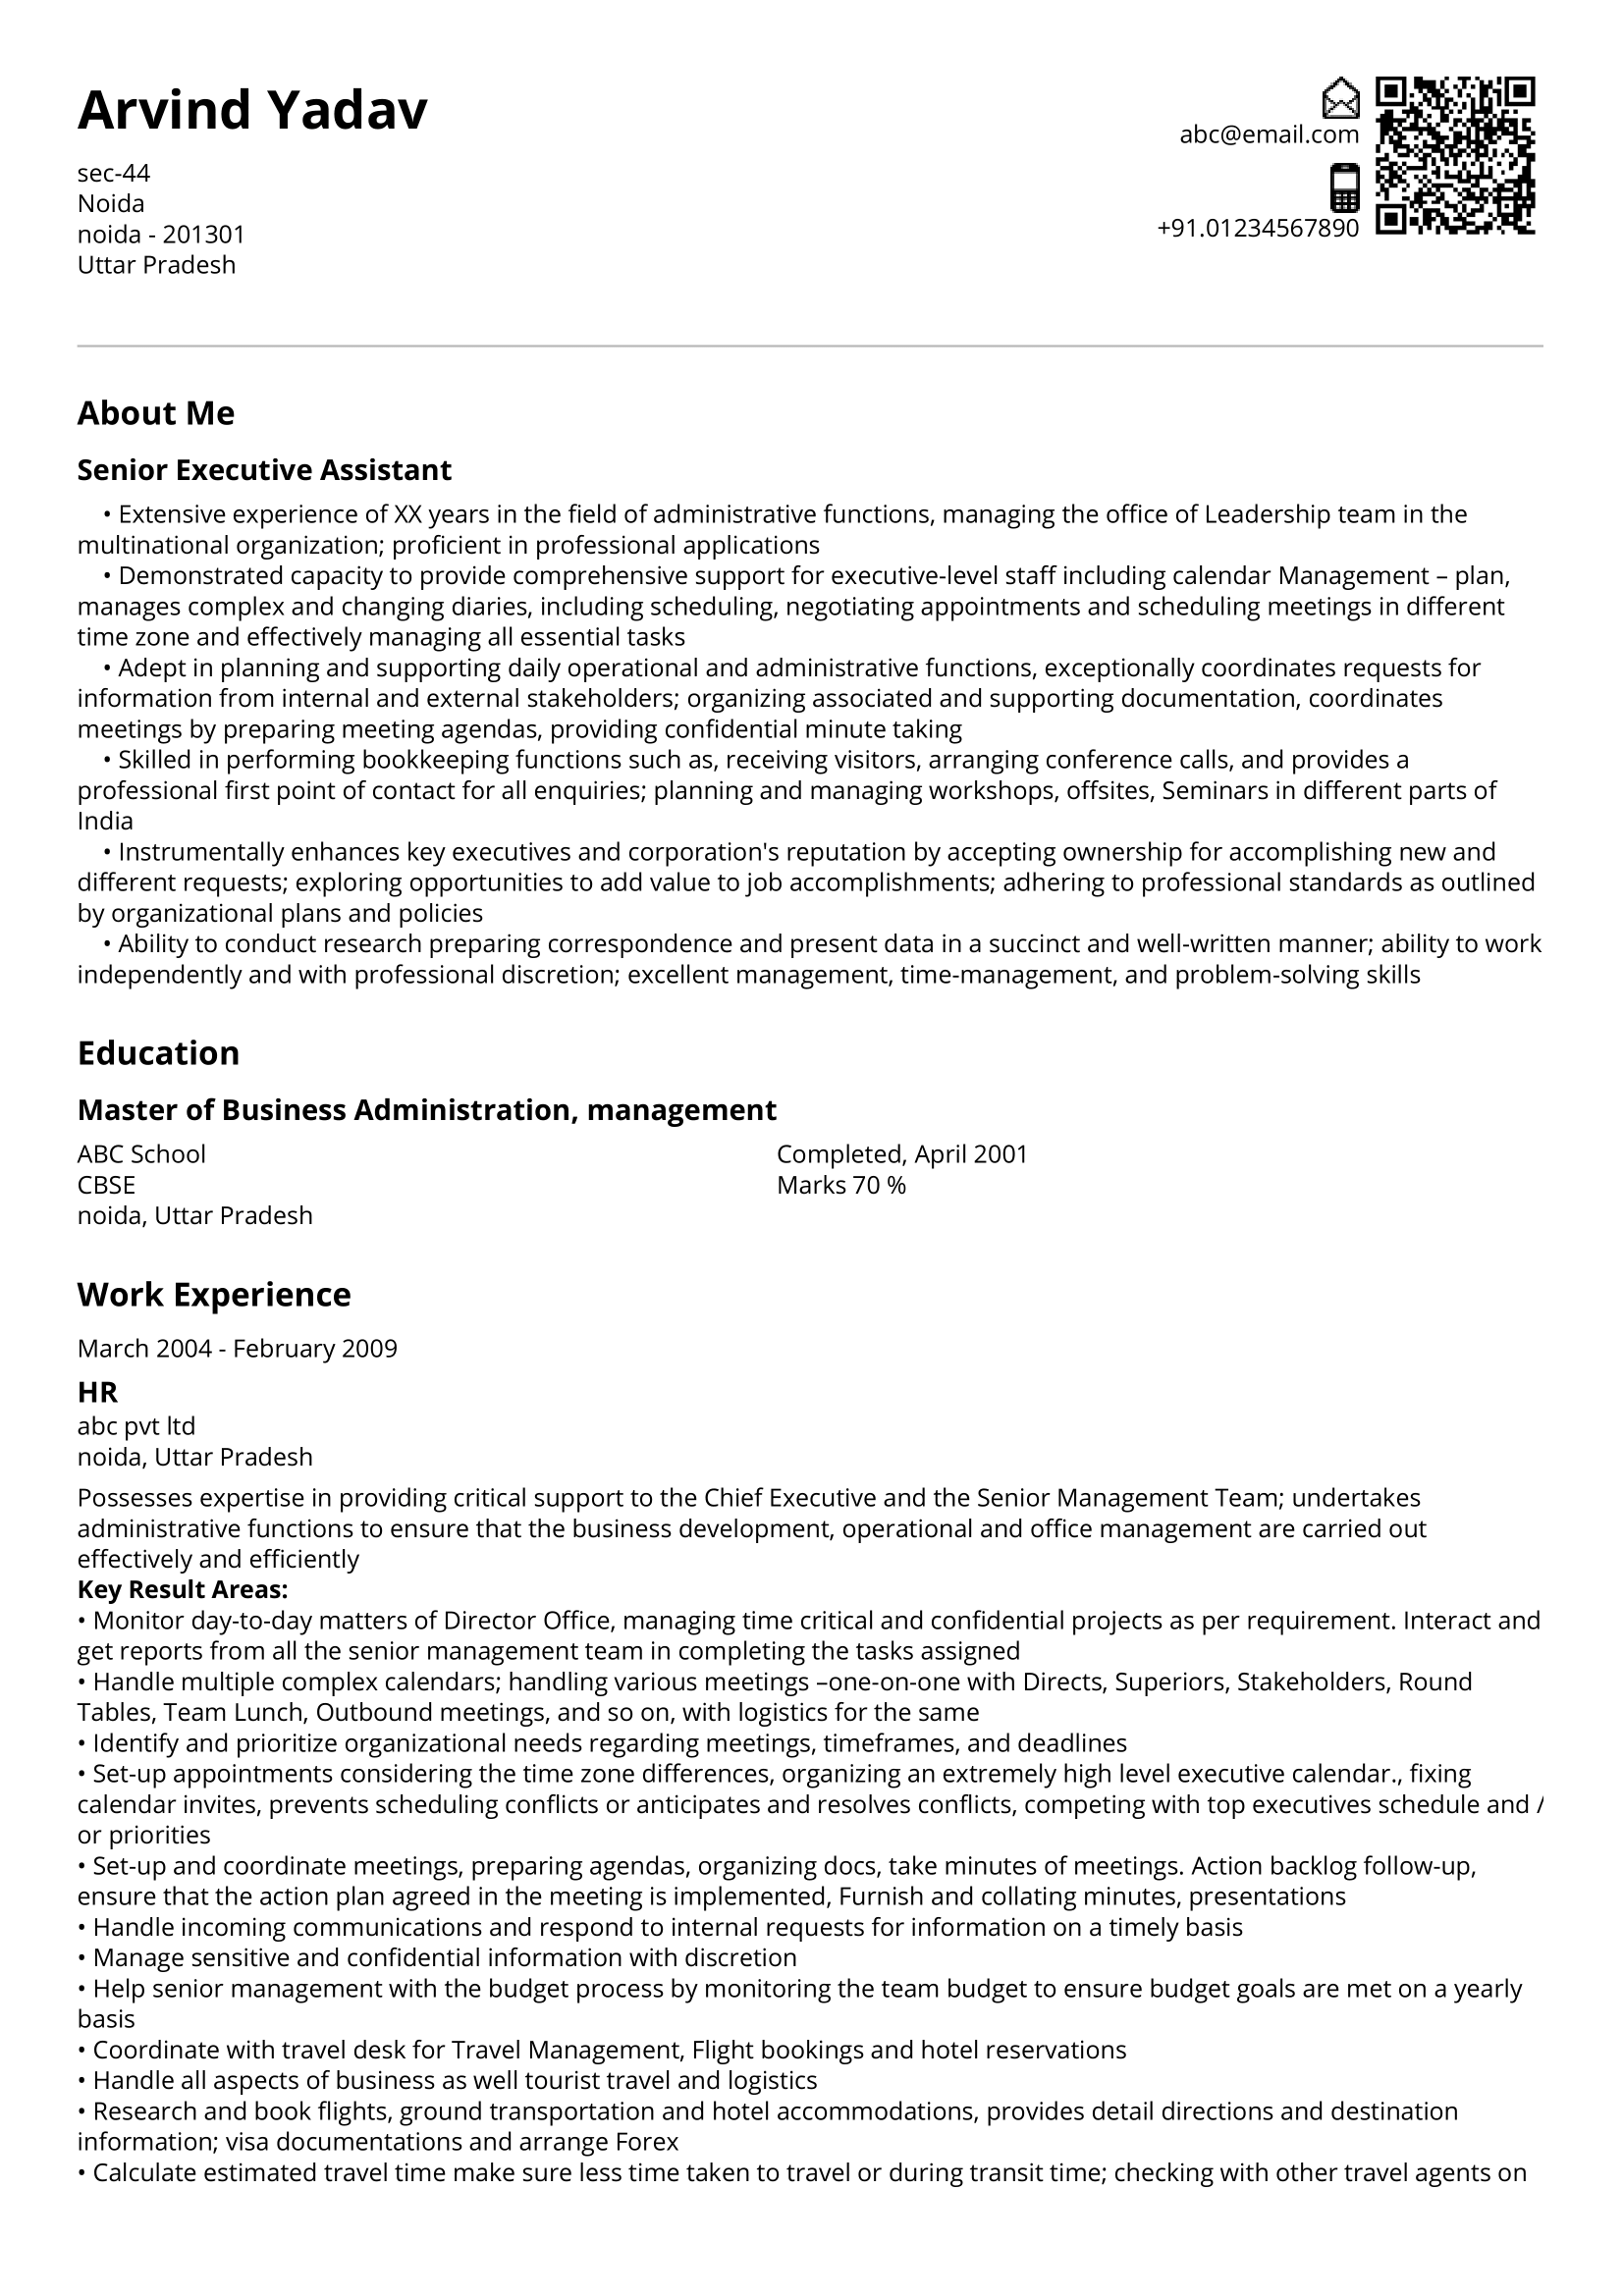 Professional Business Resume Templates in 2020 Business